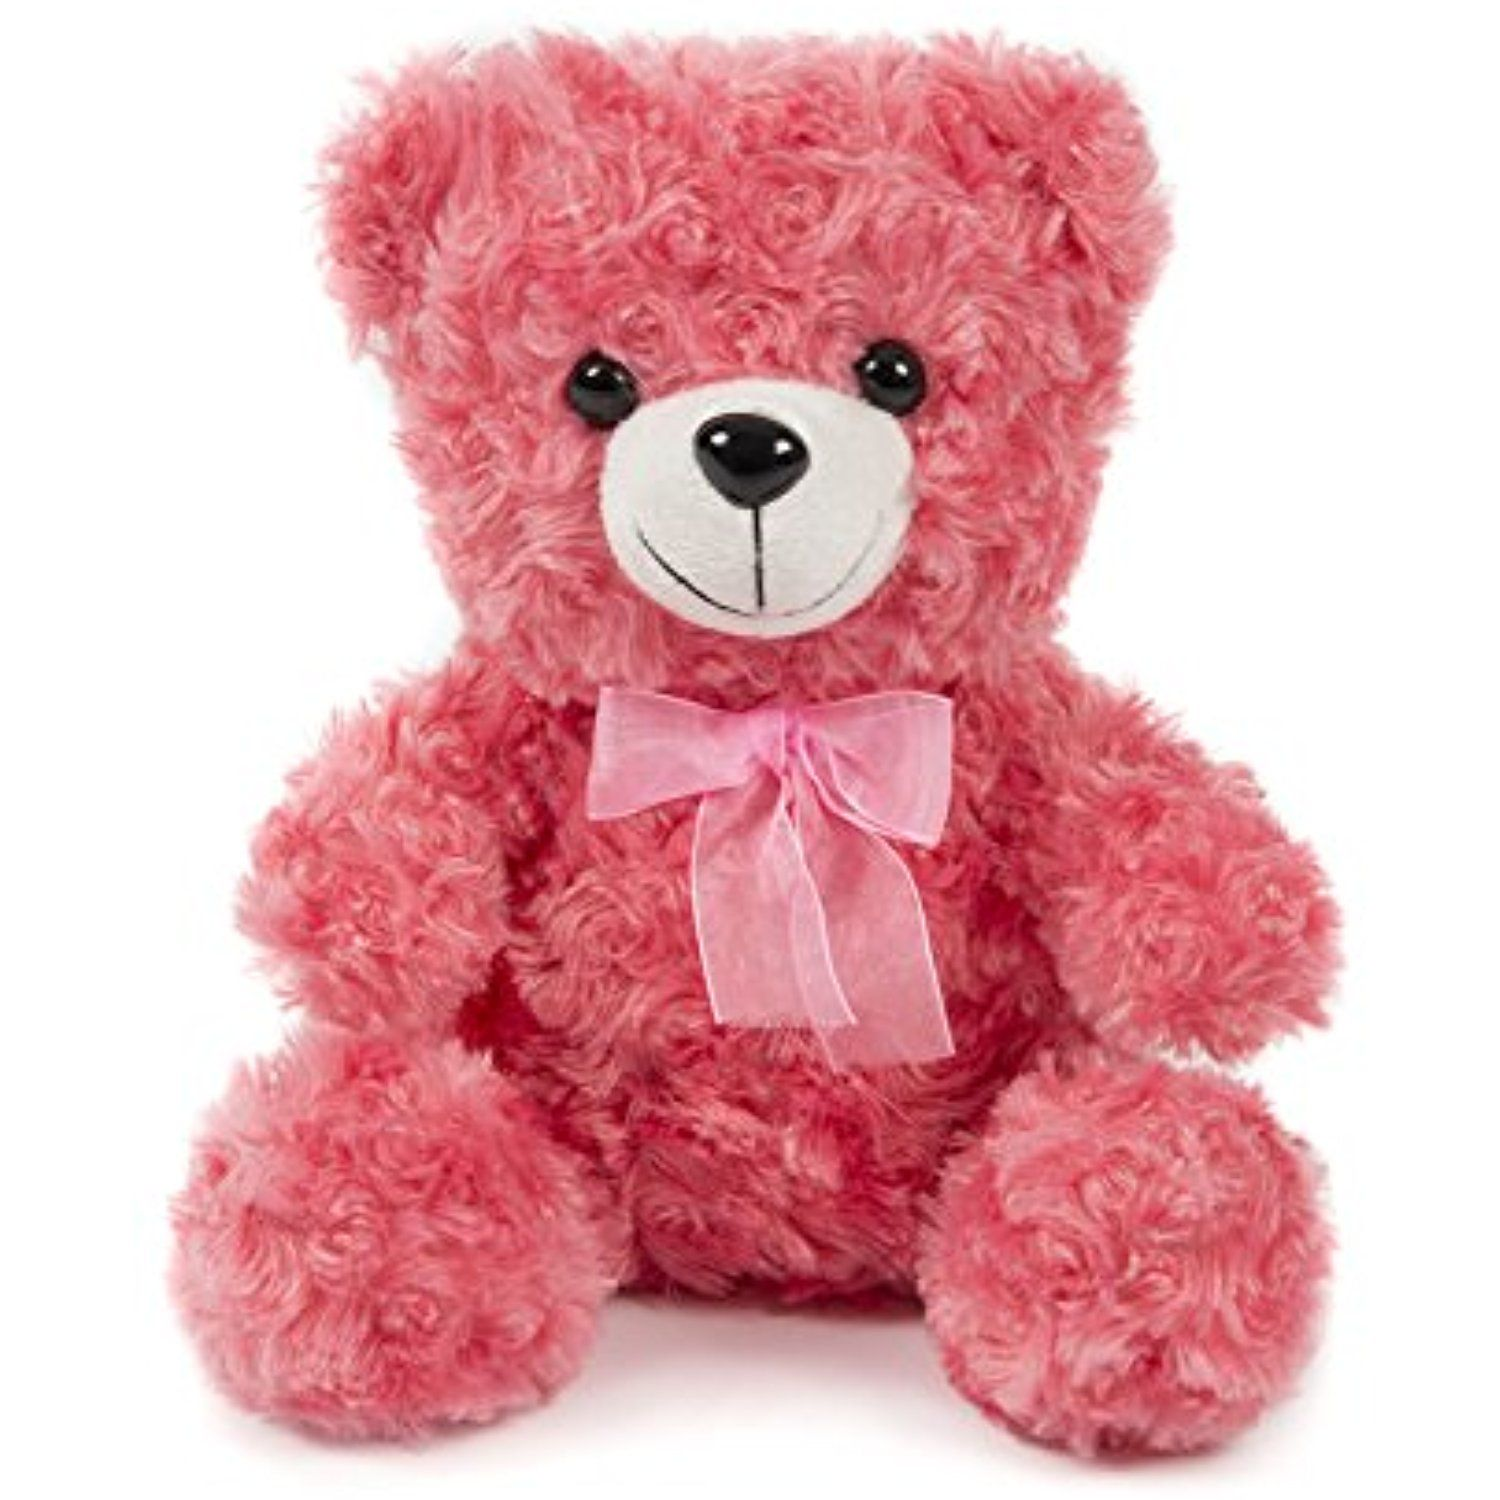 Soft Stuffed Little Teddy Bear Plush Toy 10 Inches Pink By